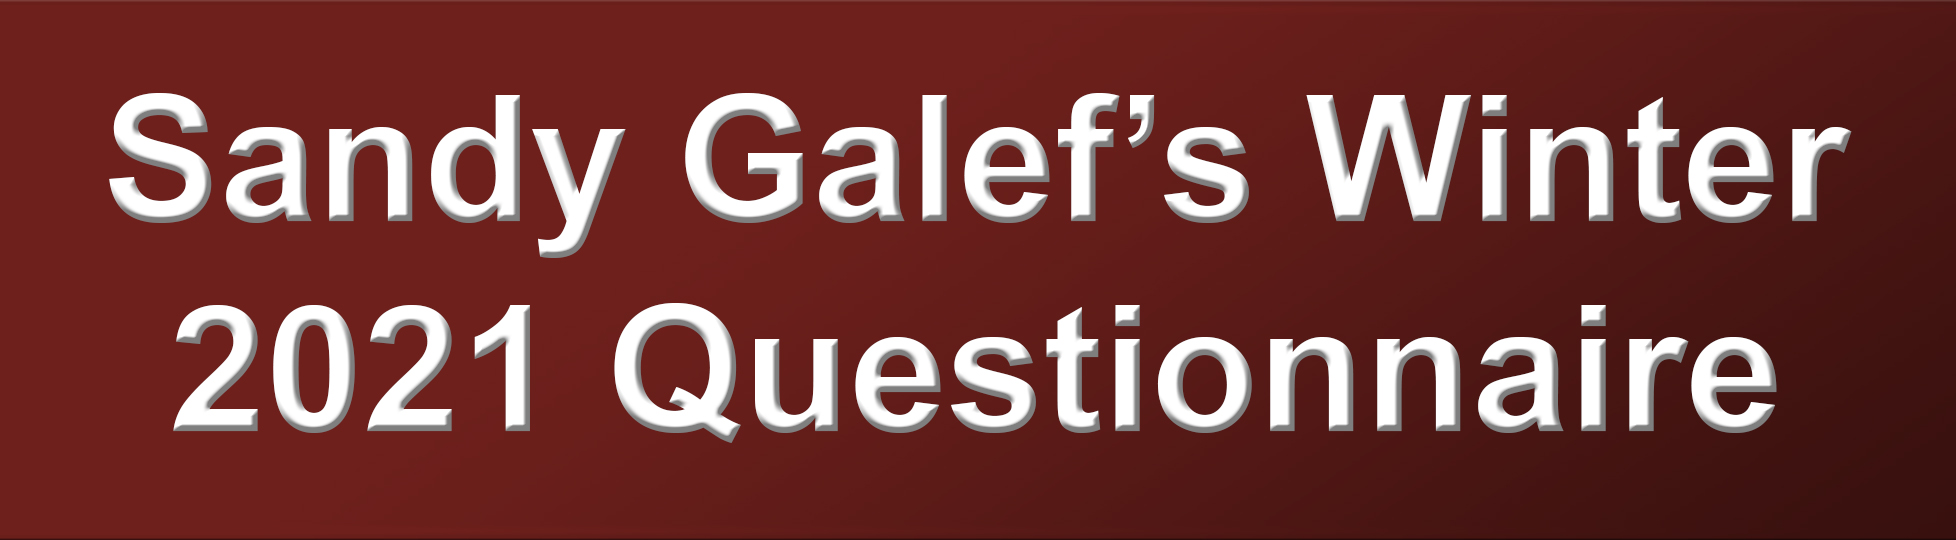 Sandy Galef's Winter 2021 Questionnaire